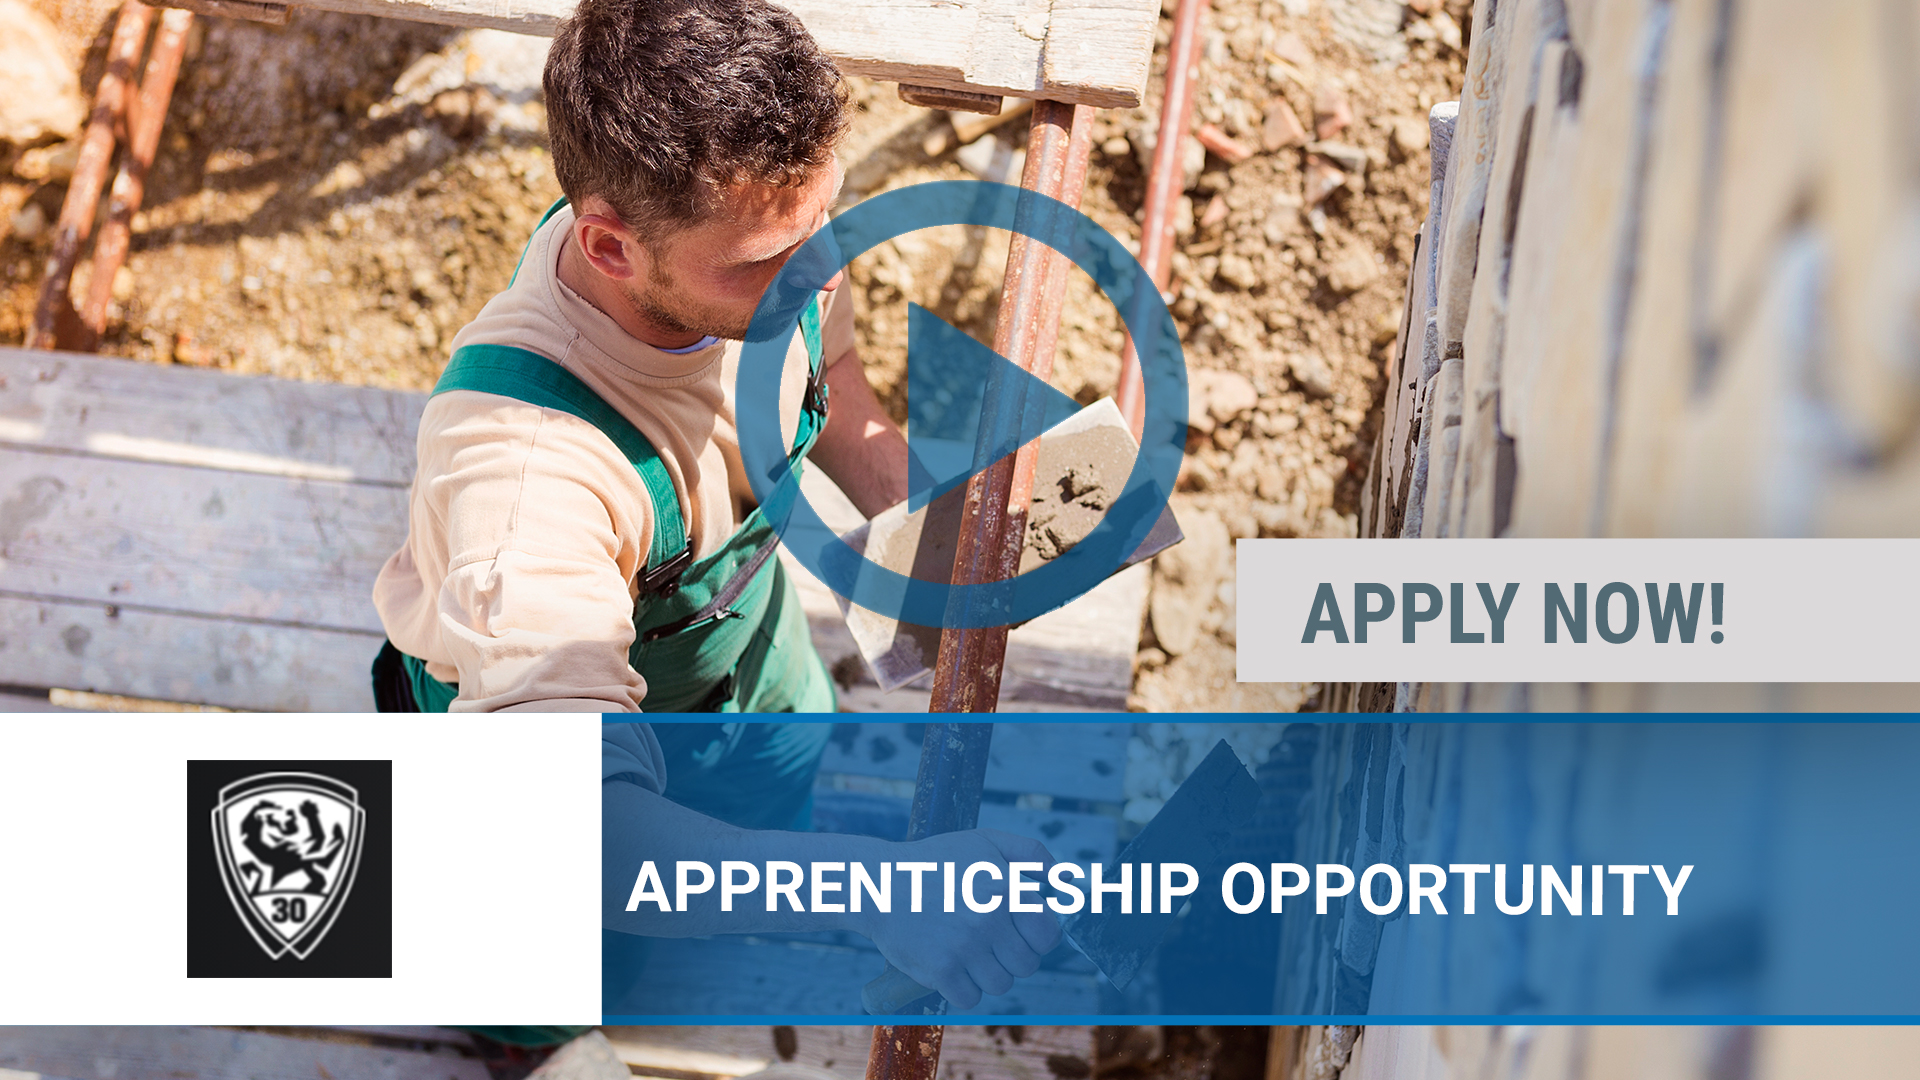 Watch our careers video for available job opening APPRENTICESHIP OPPORTUNITY in Peoria, IL